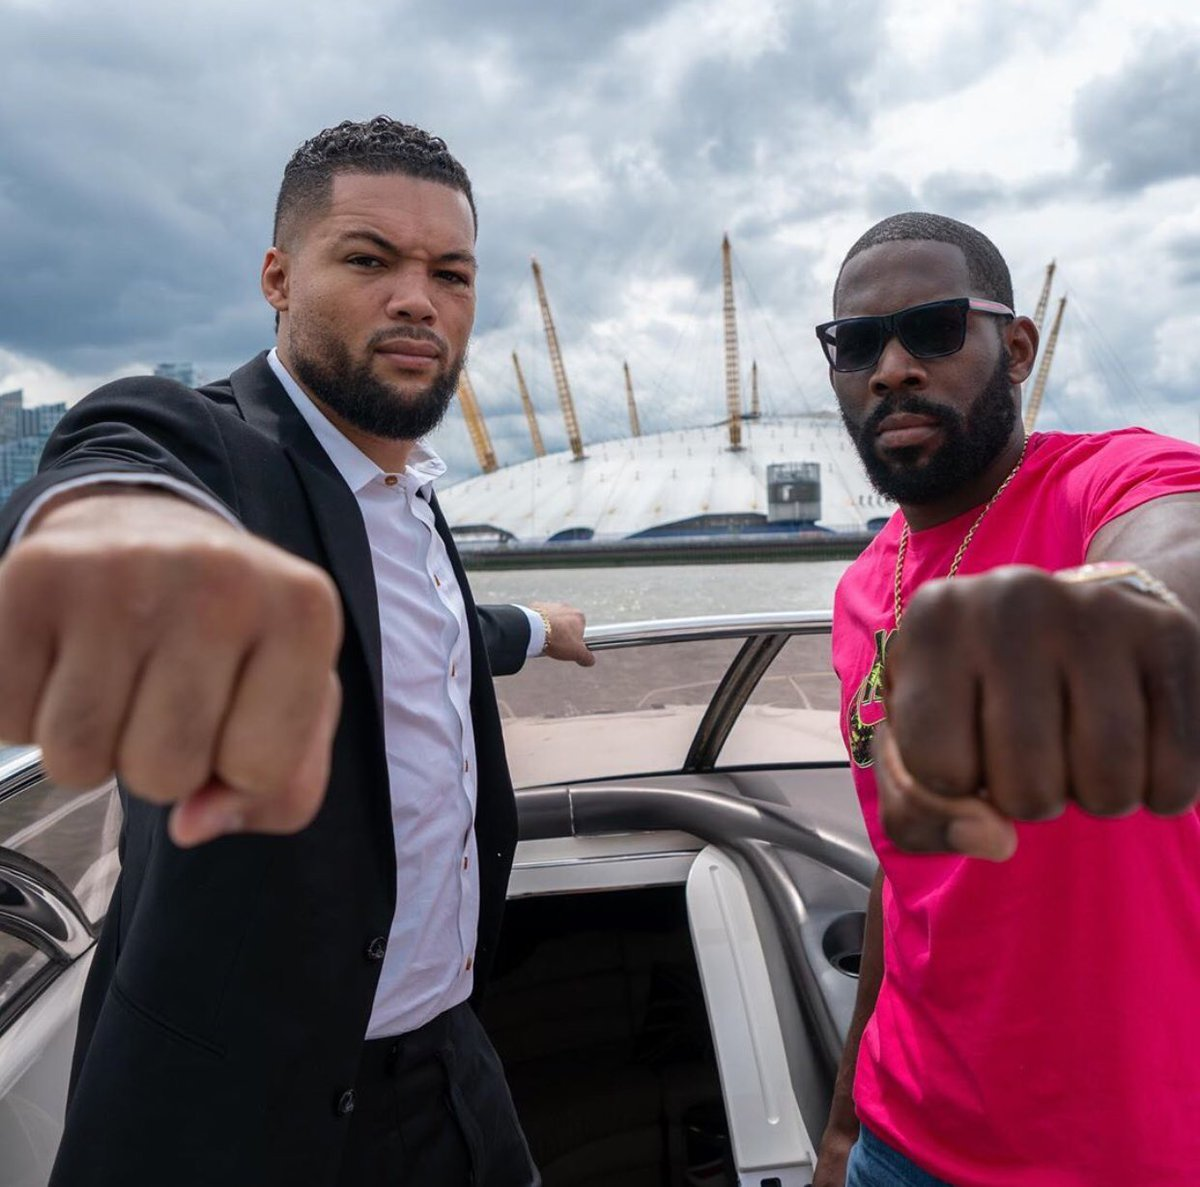 Heavyweights-Joe-Joyce-vs-Bryant-Jennings